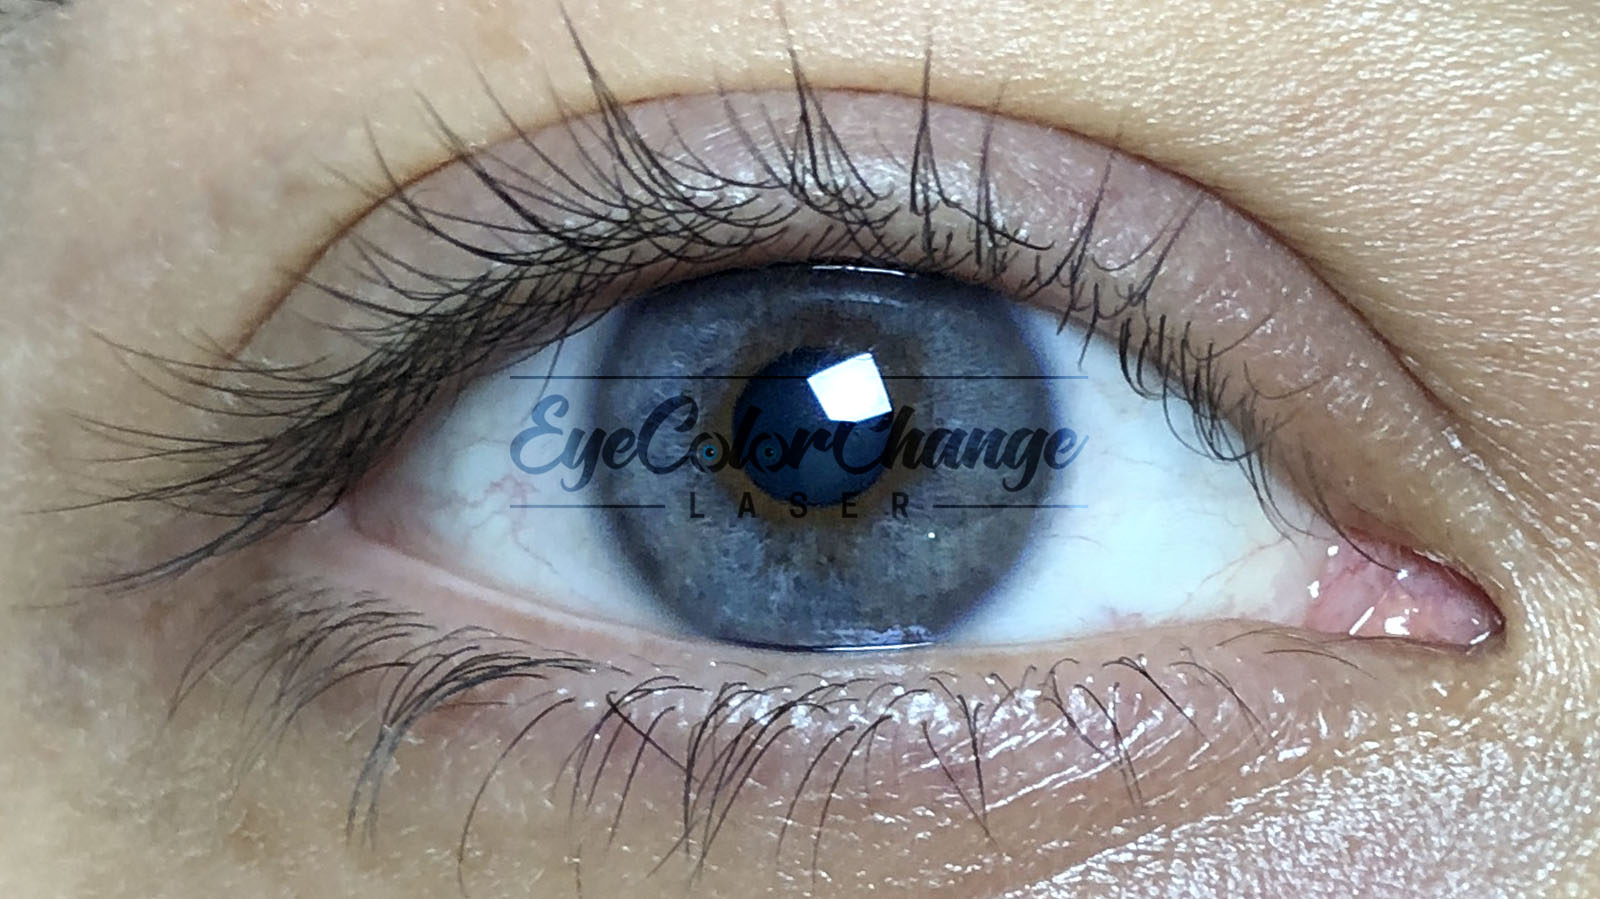 Eye color change with laser, eye color change surgery with laser, permanent eye color change with laser, eye color change laser turkey, eye color change laser price, eye color change laser experience, change eye color with laser before and after